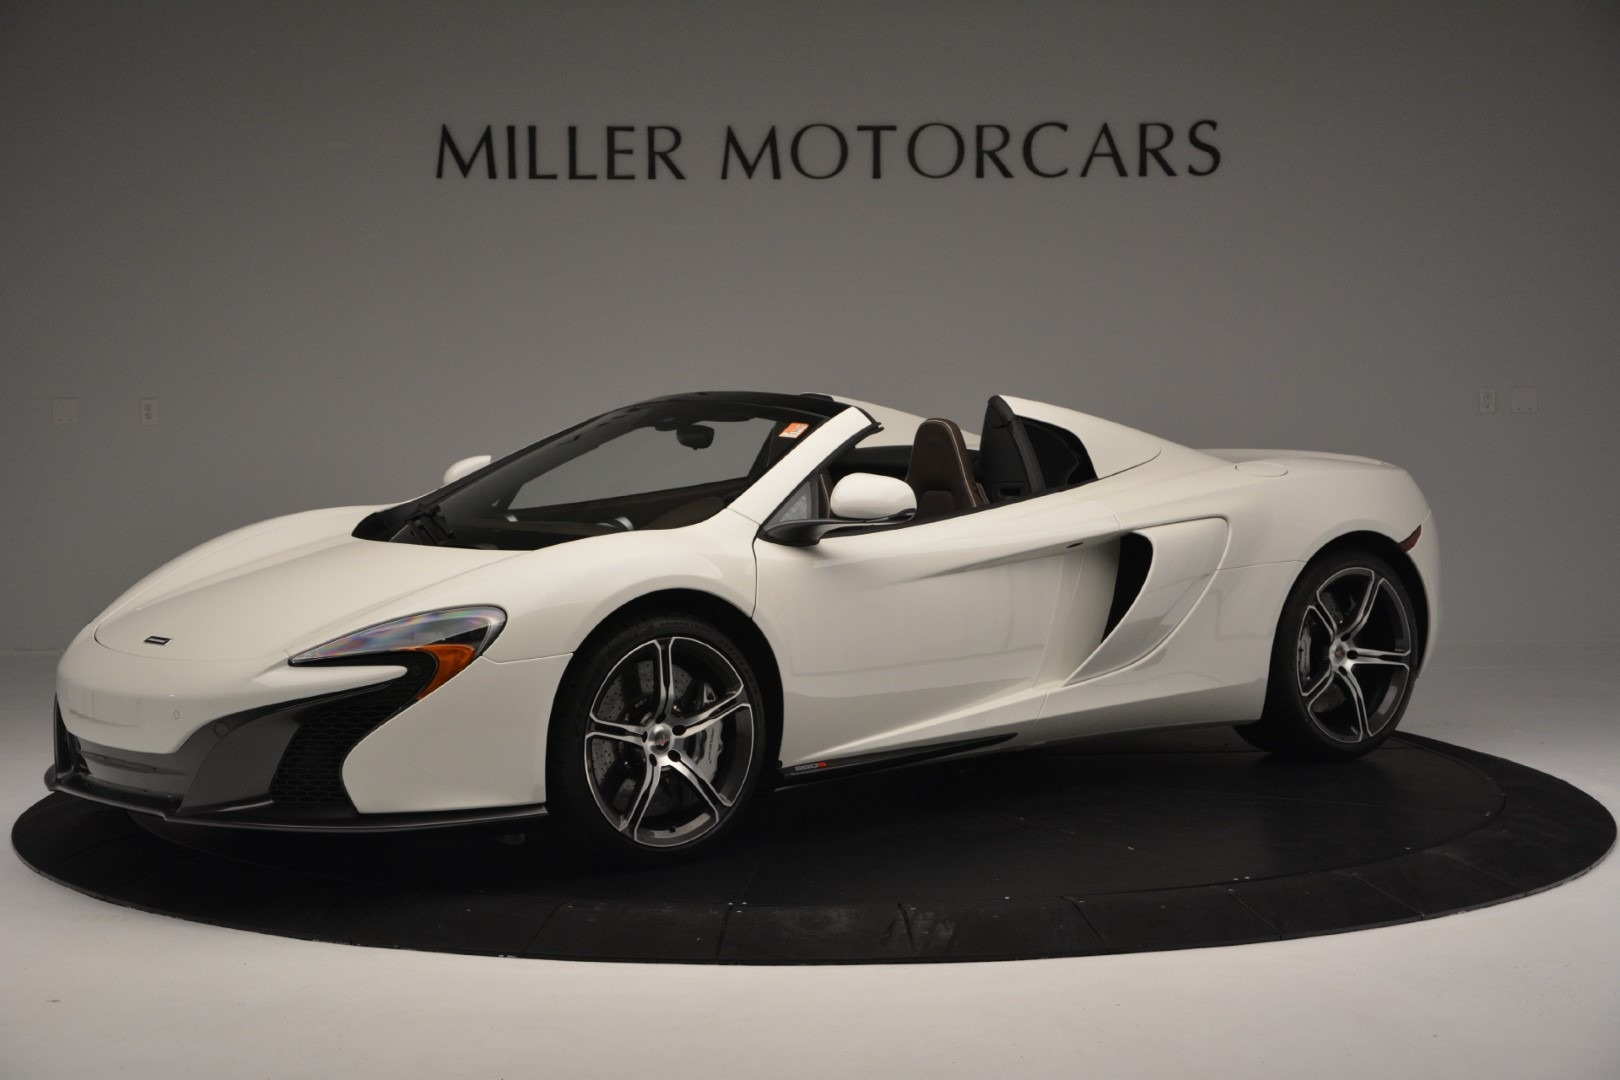 Used 2015 McLaren 650S Spider Convertible For Sale In Greenwich, CT. Alfa Romeo of Greenwich, 3169 3219_main